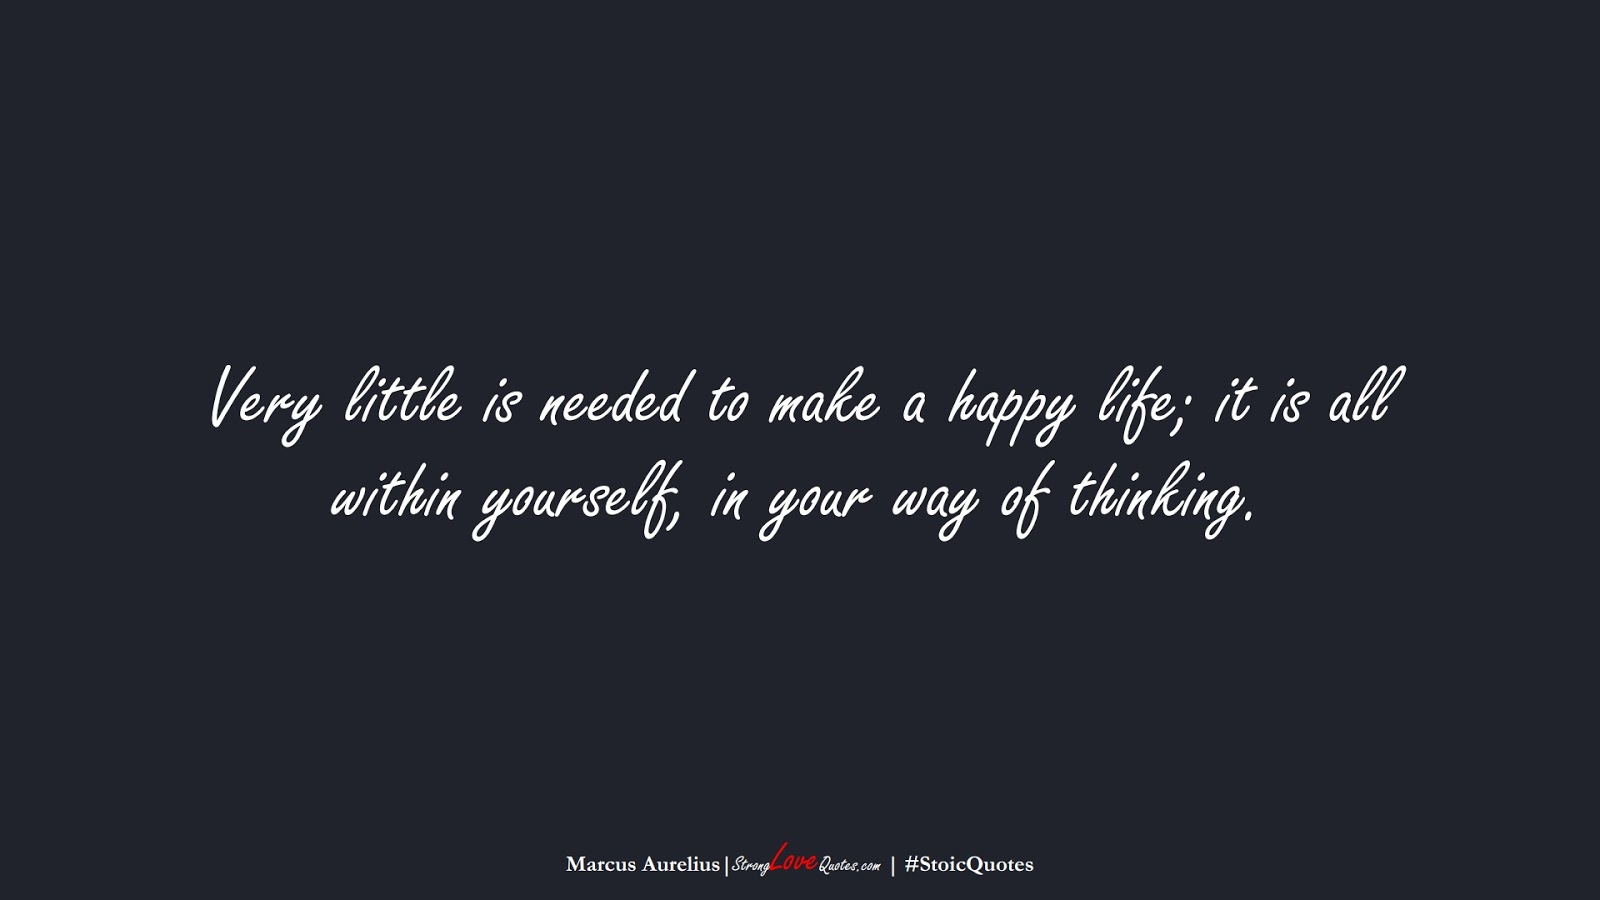 Very little is needed to make a happy life; it is all within yourself, in your way of thinking. (Marcus Aurelius);  #StoicQuotes